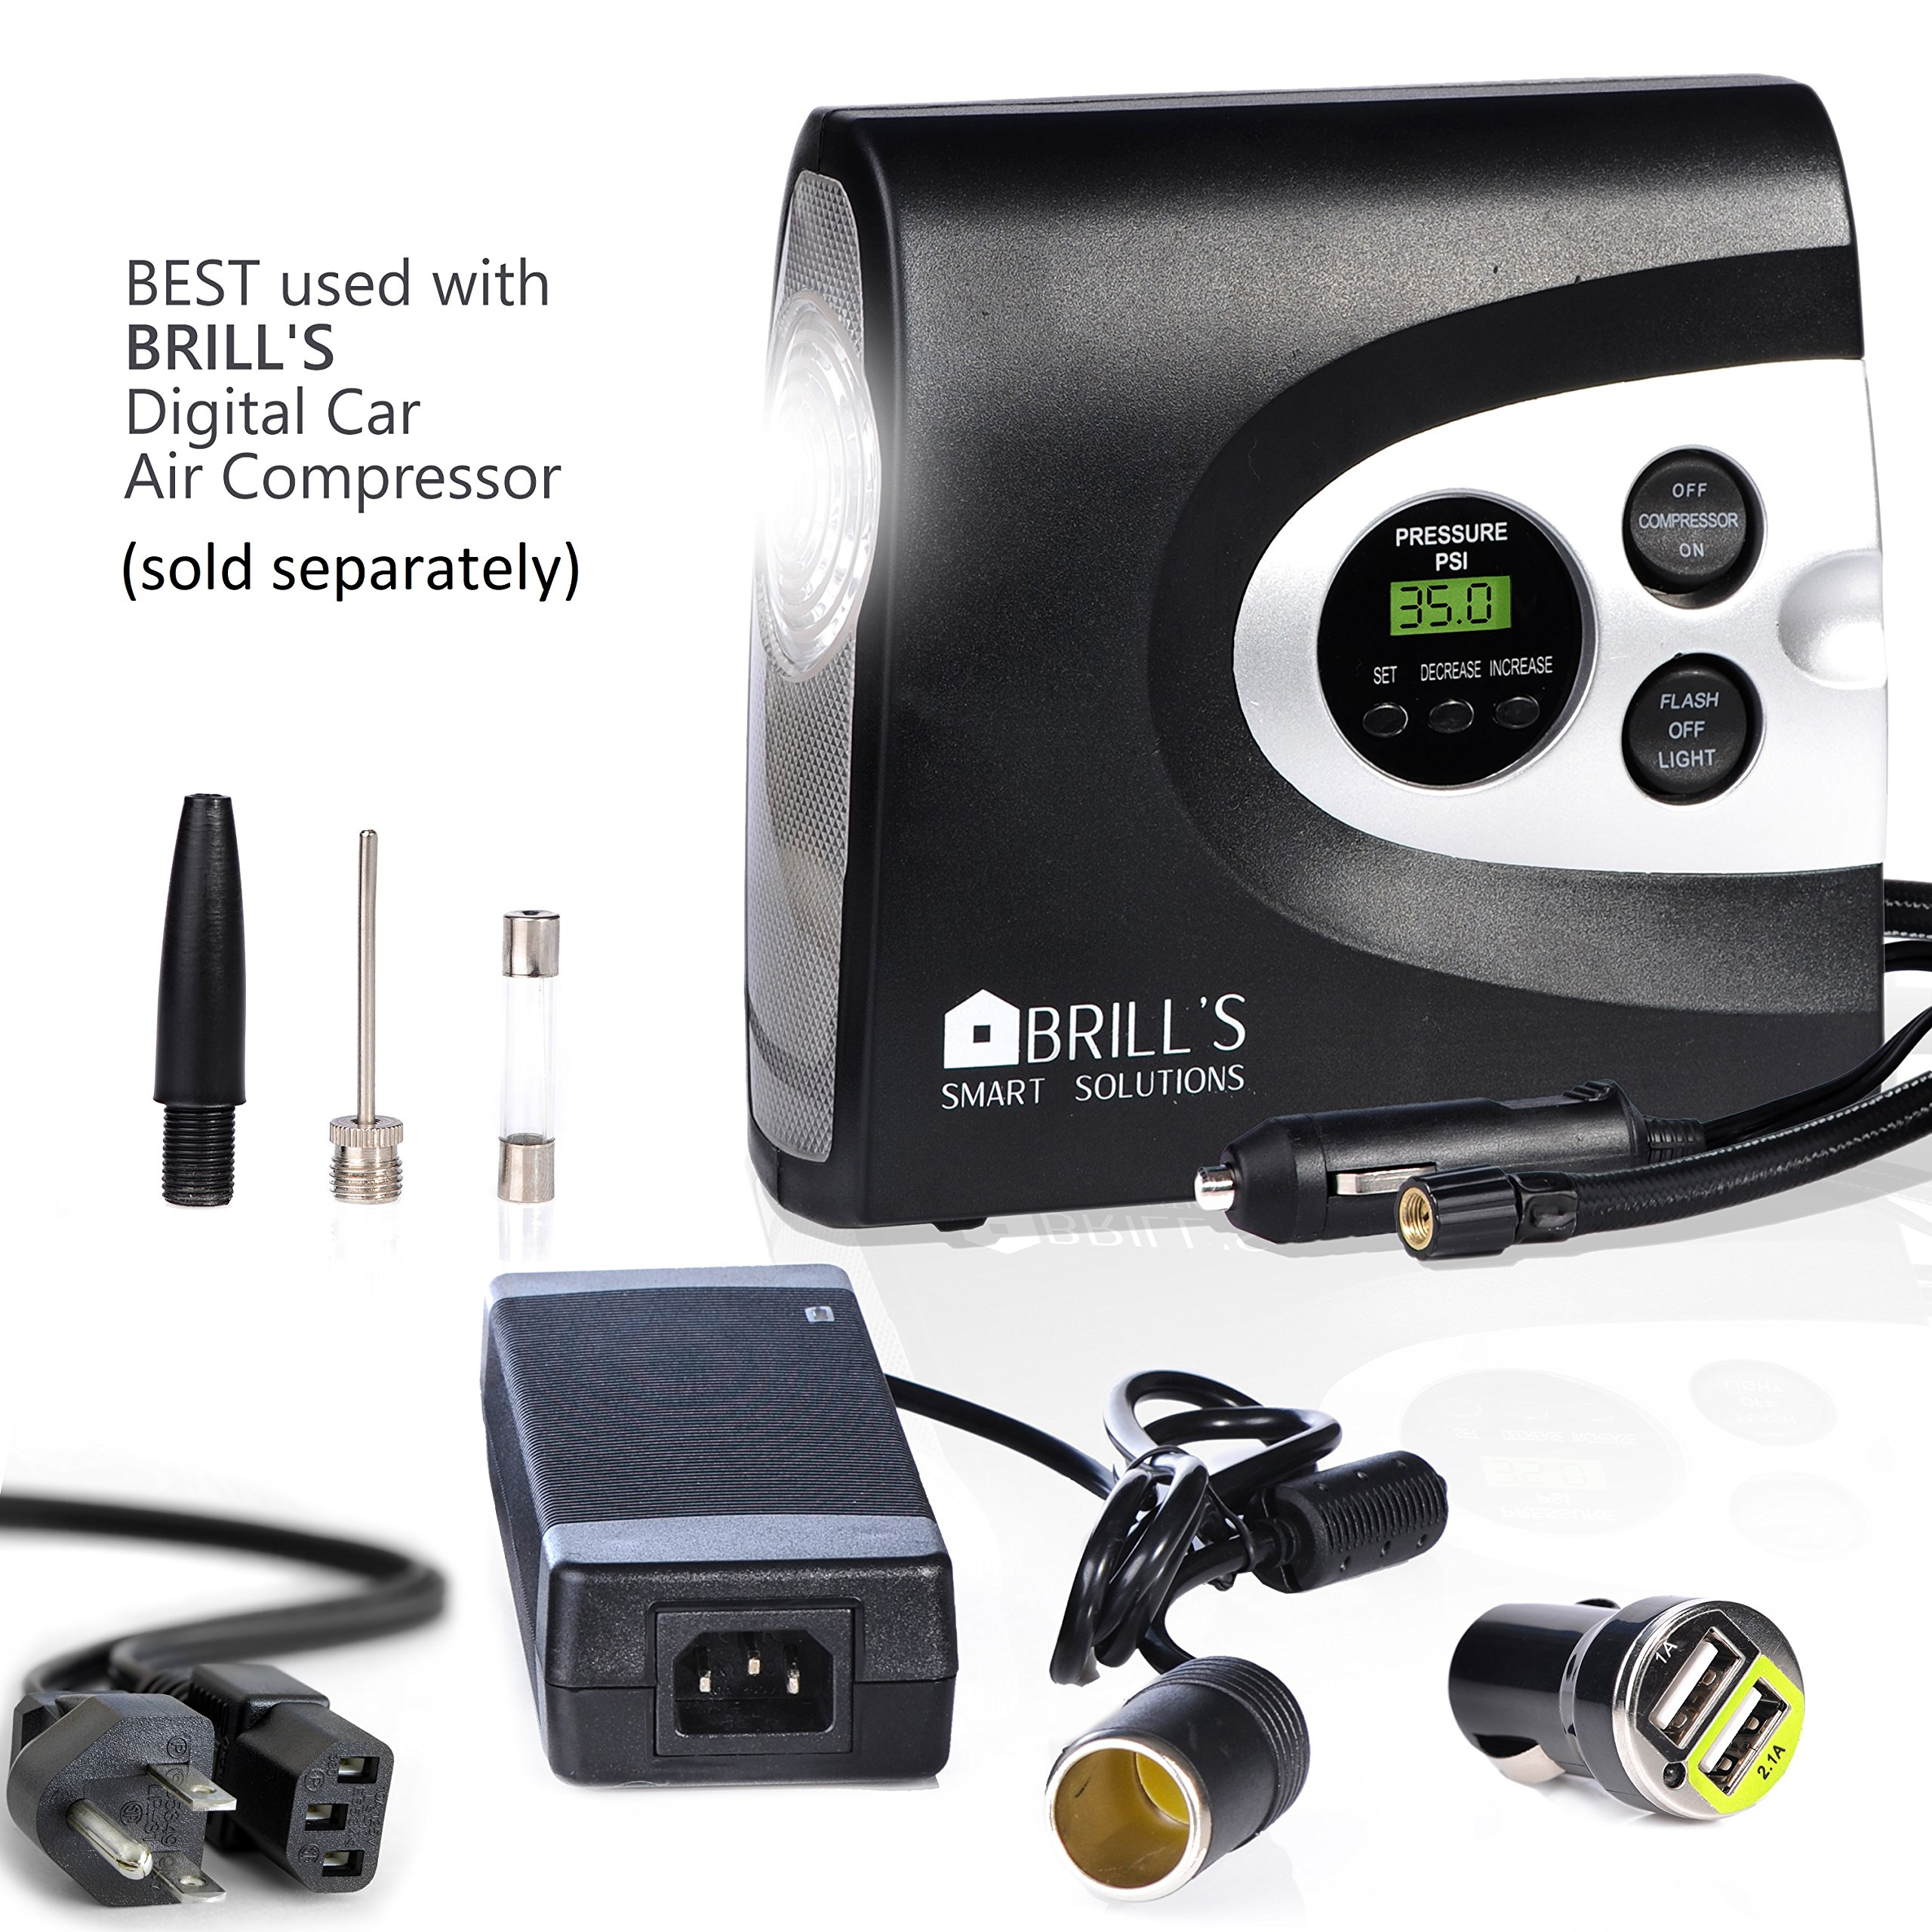 BRILL'S 12V DC Portable Tire Inflator Pump, 150 Psi Electric Air Compressor for Cars, Bikes, Motorcycles and Balls. Carry Case and USB Car Charge Included by BRILL'S SMART SOLUTIONS (Image #9)